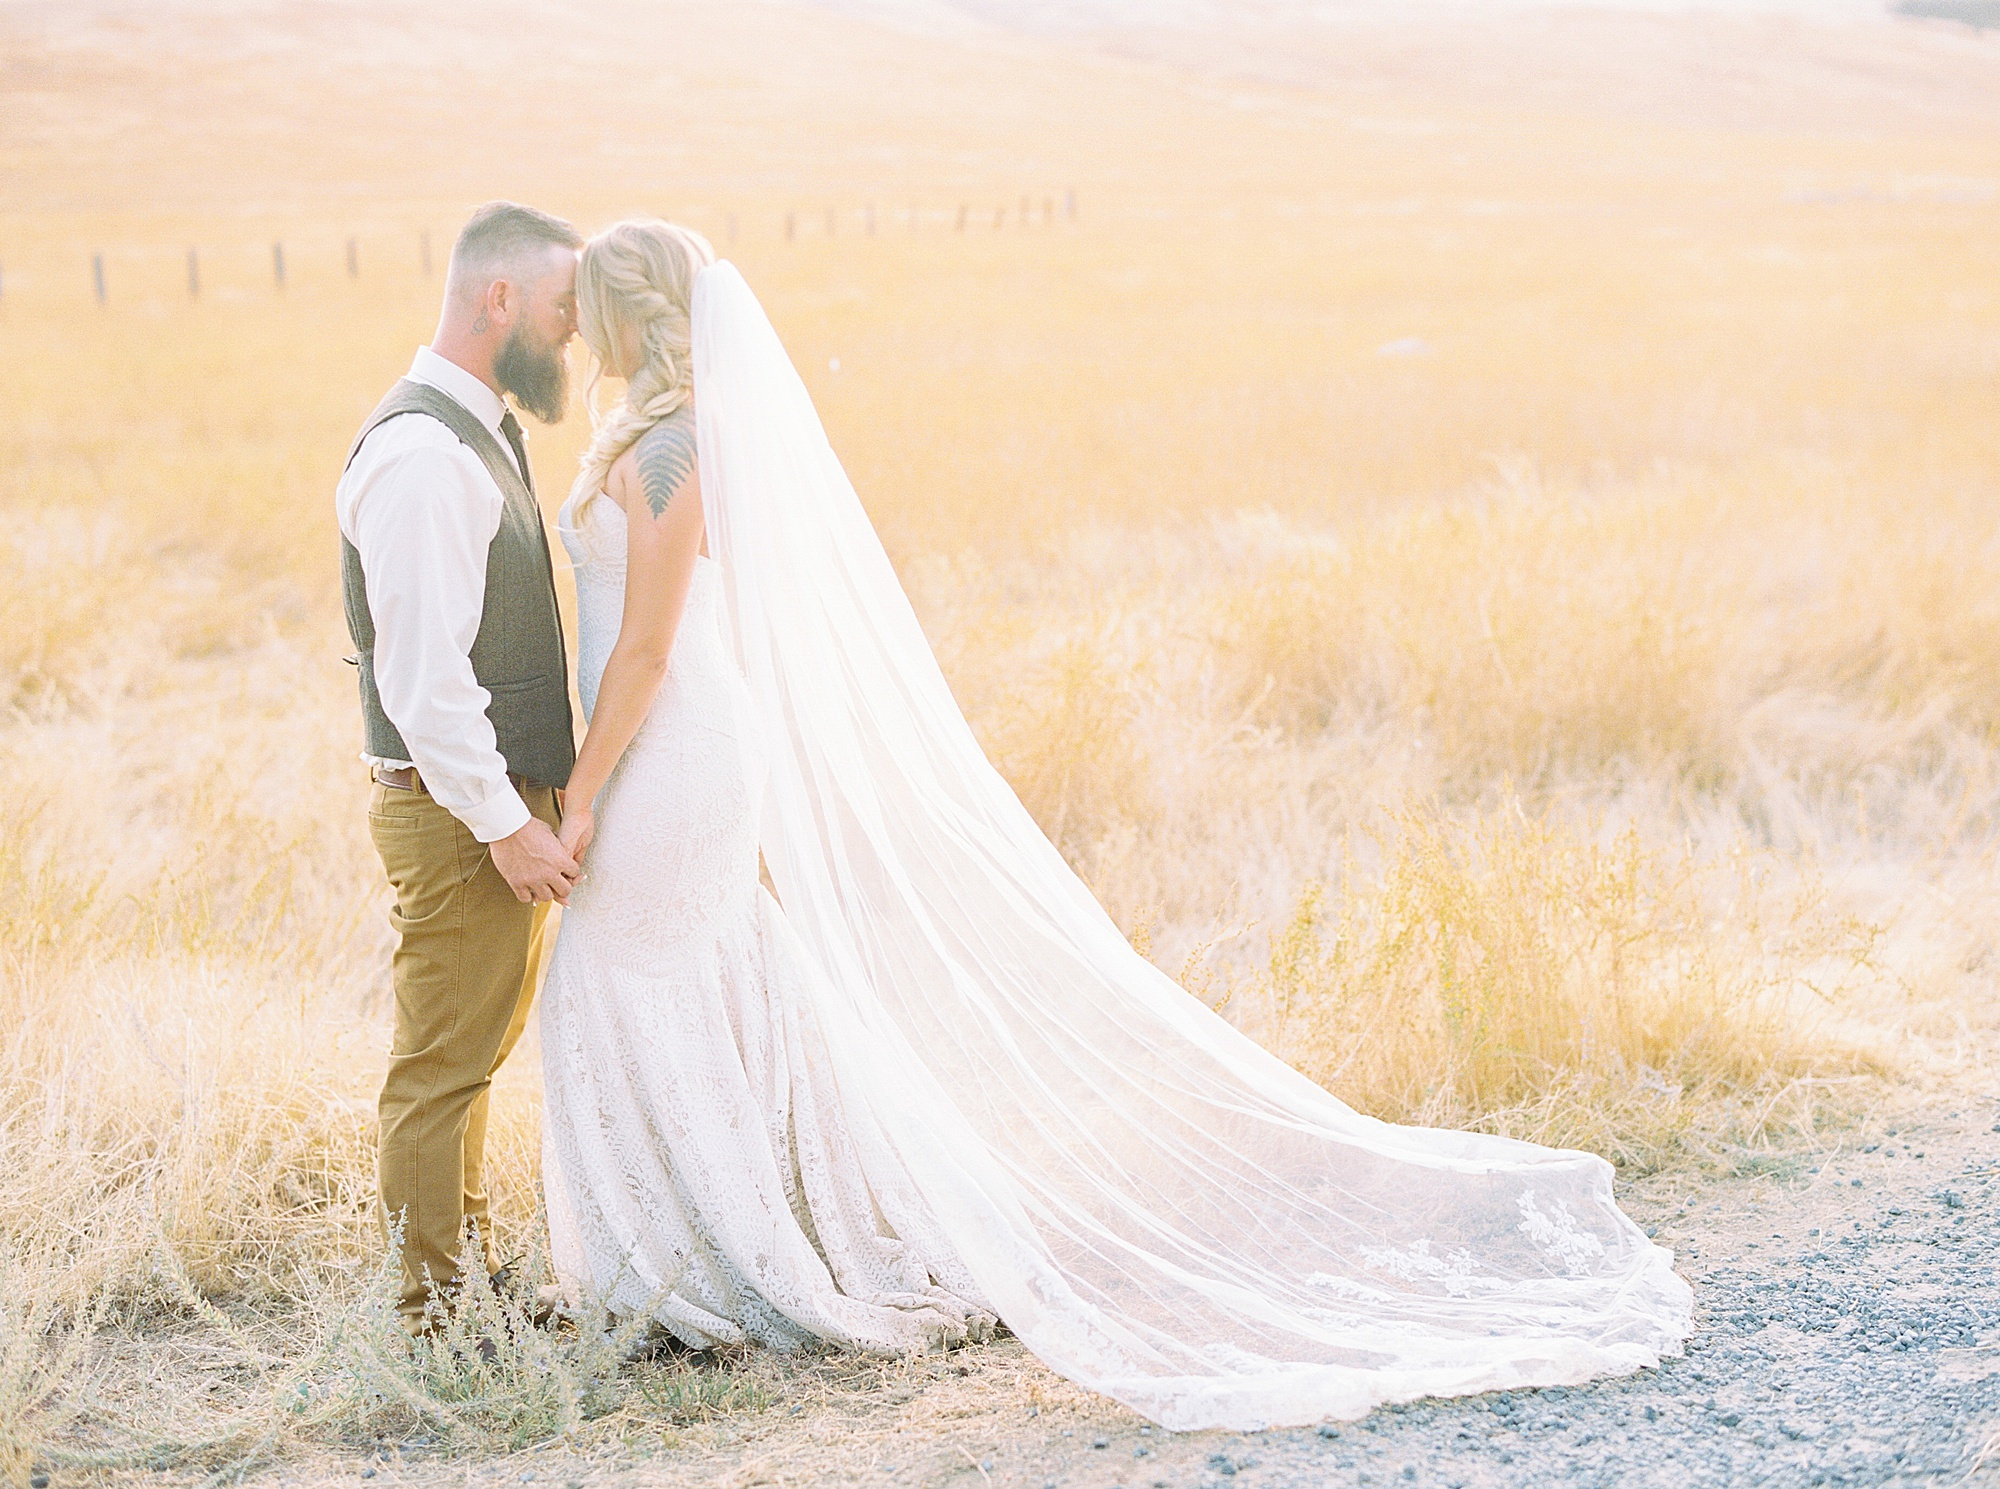 Sonora Wedding Photographer - Tiffany and Jesse - Ashley Baumgartner - Private Estate Summer Wedding_0118.jpg